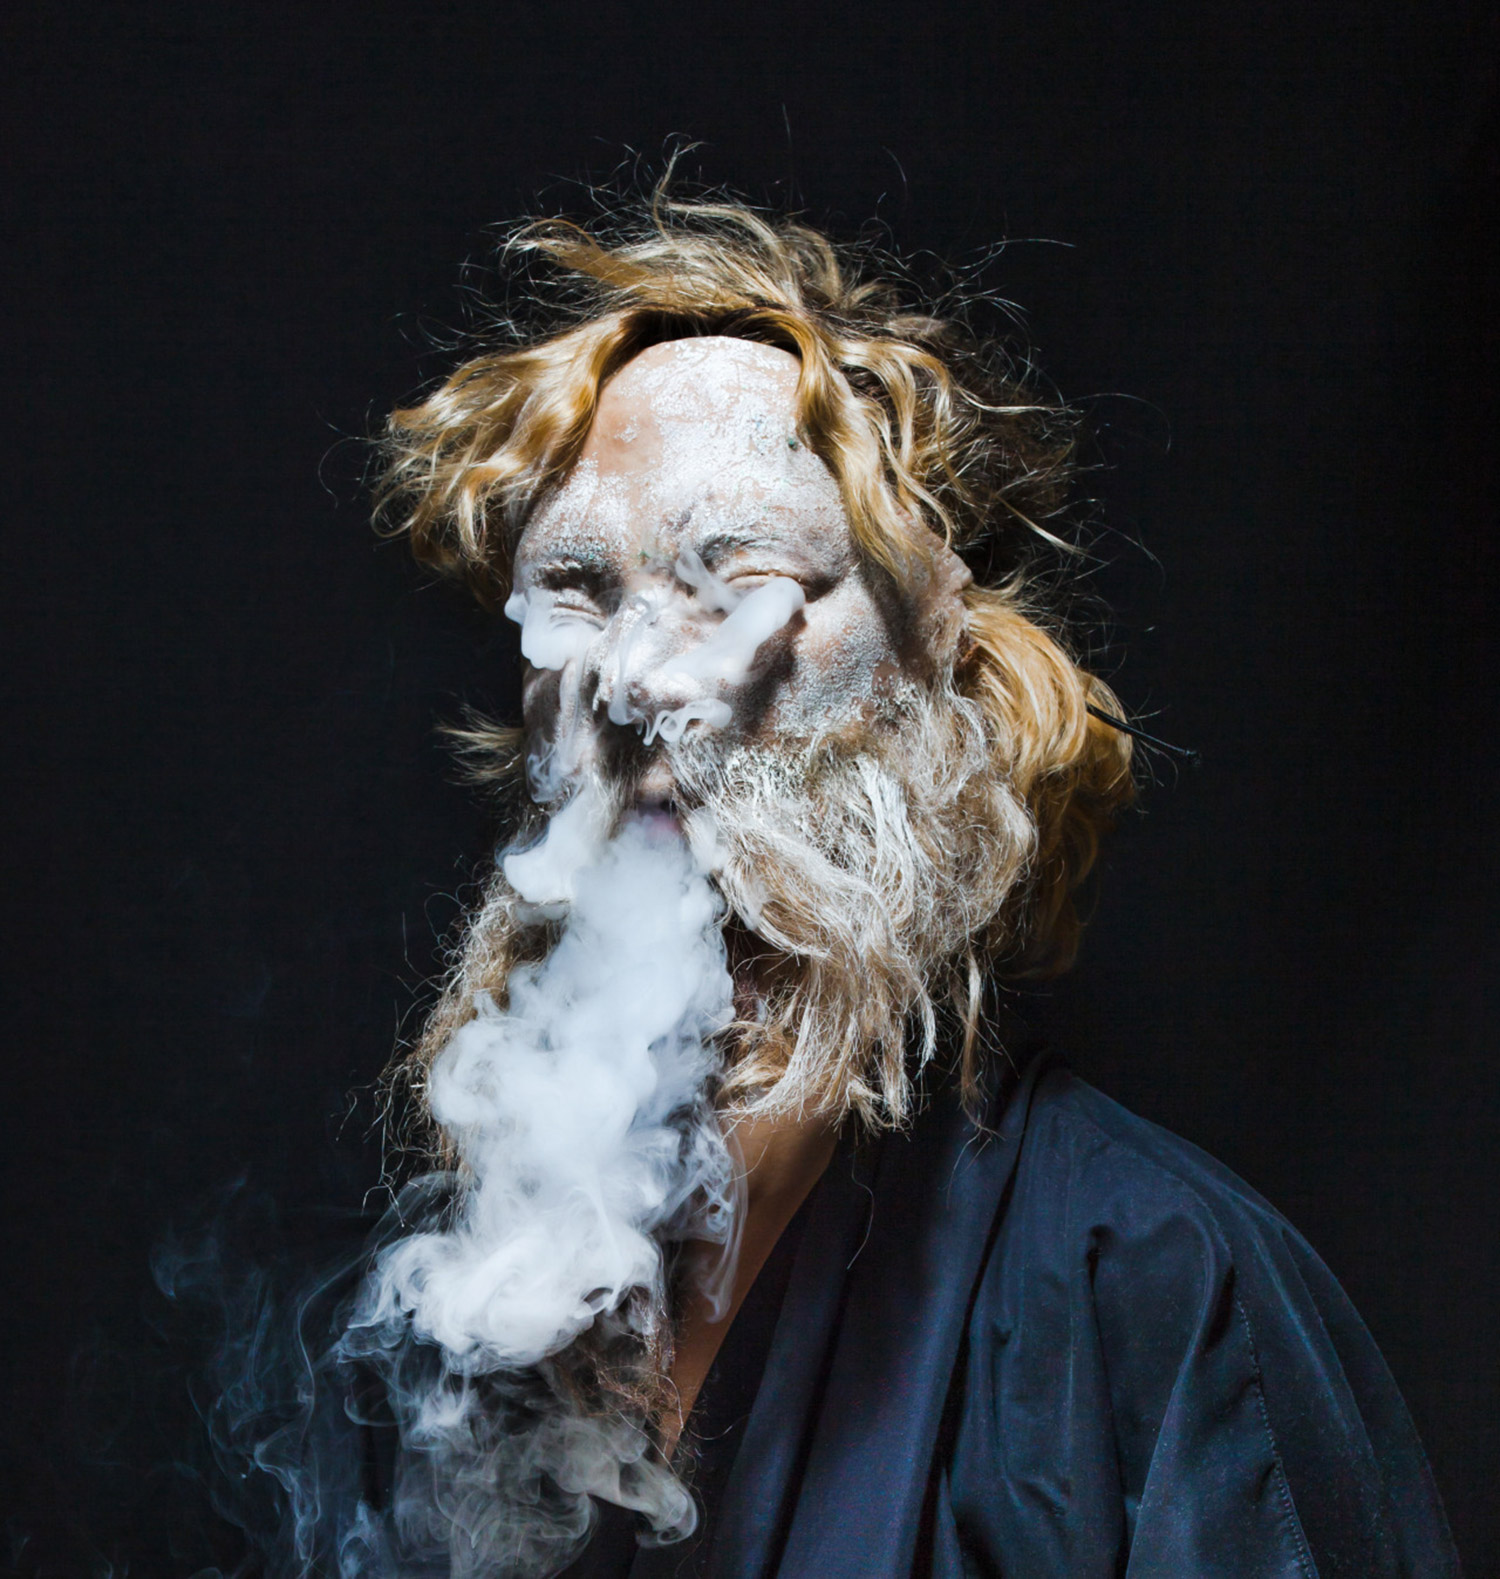 Sarah Sitkin, Jeffyboy, face crumbling into smoke